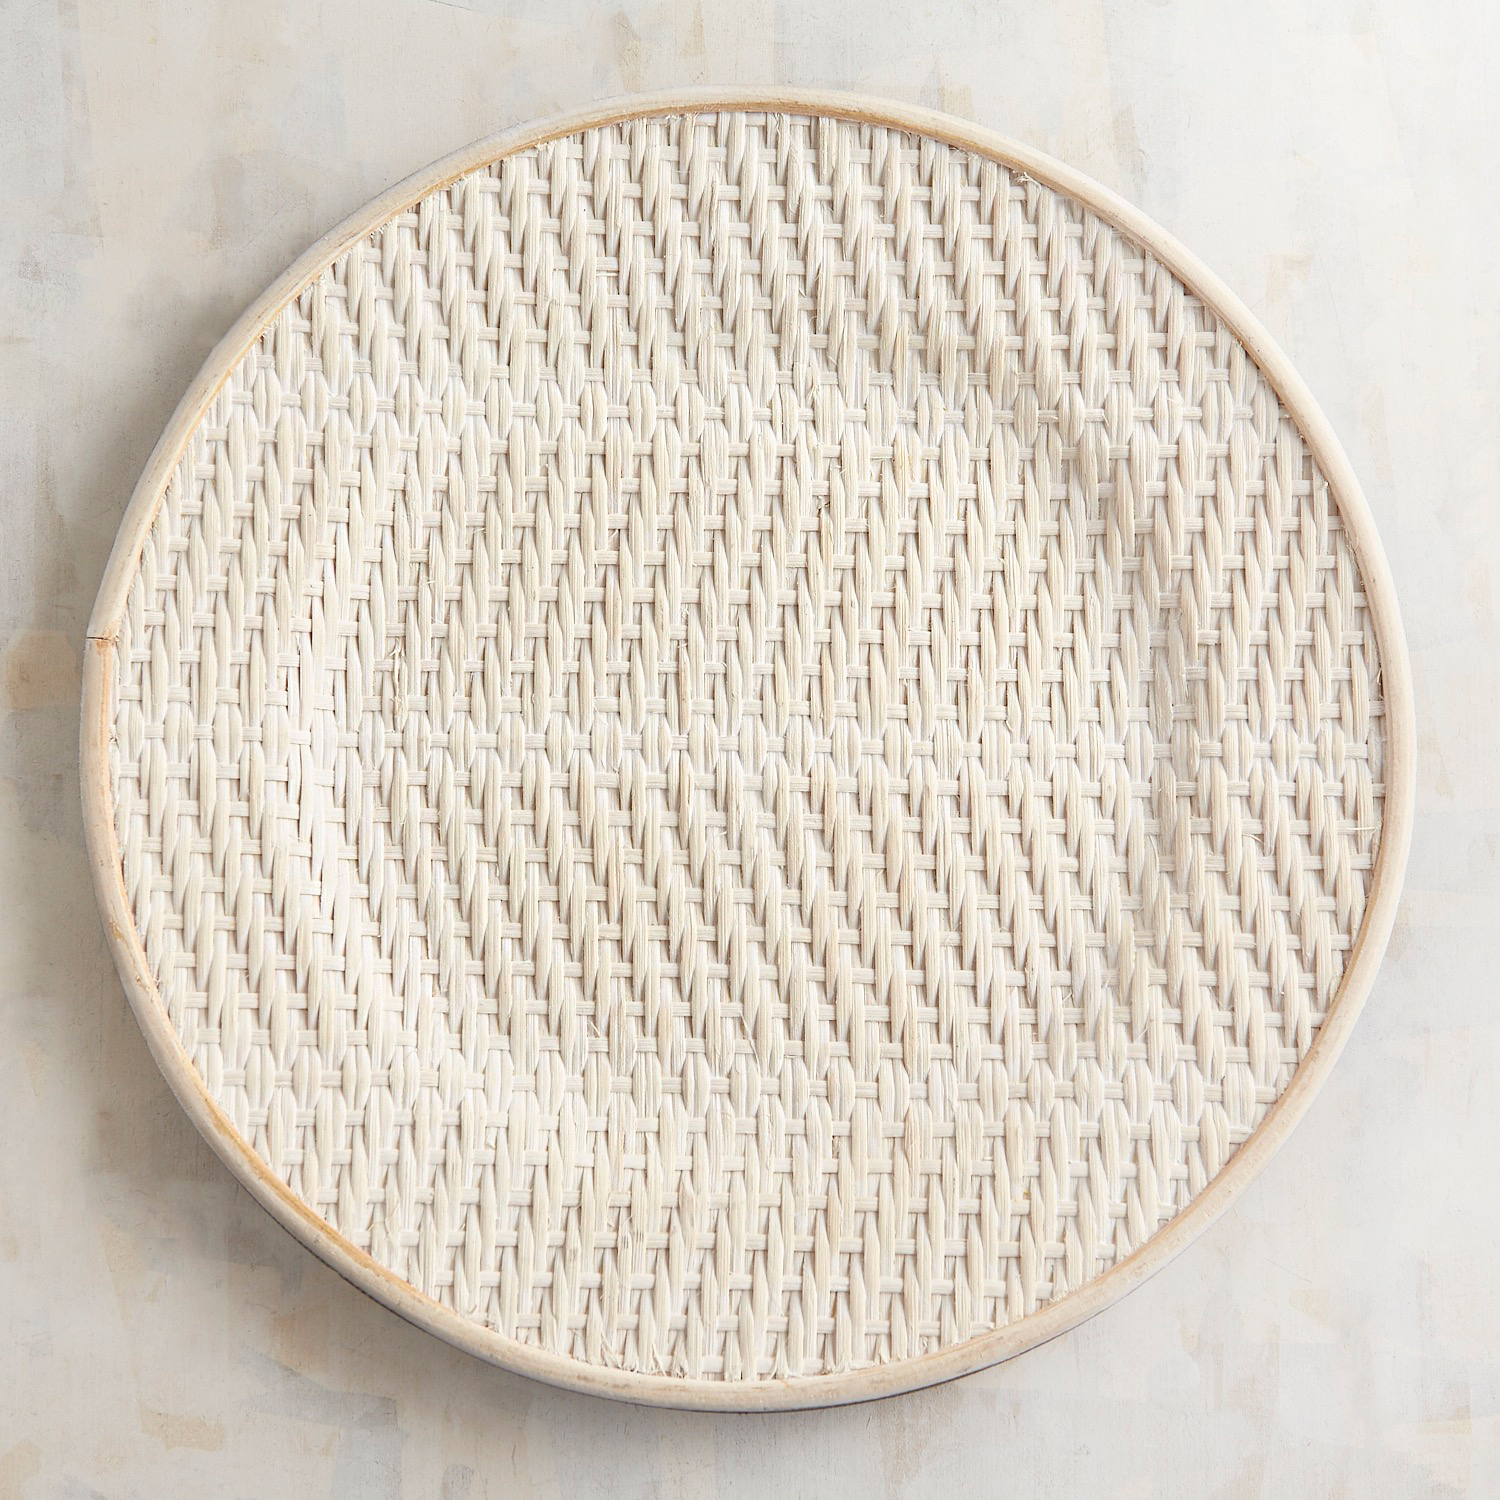 Whitewashed Woven Rattan Coupe Charger Plate